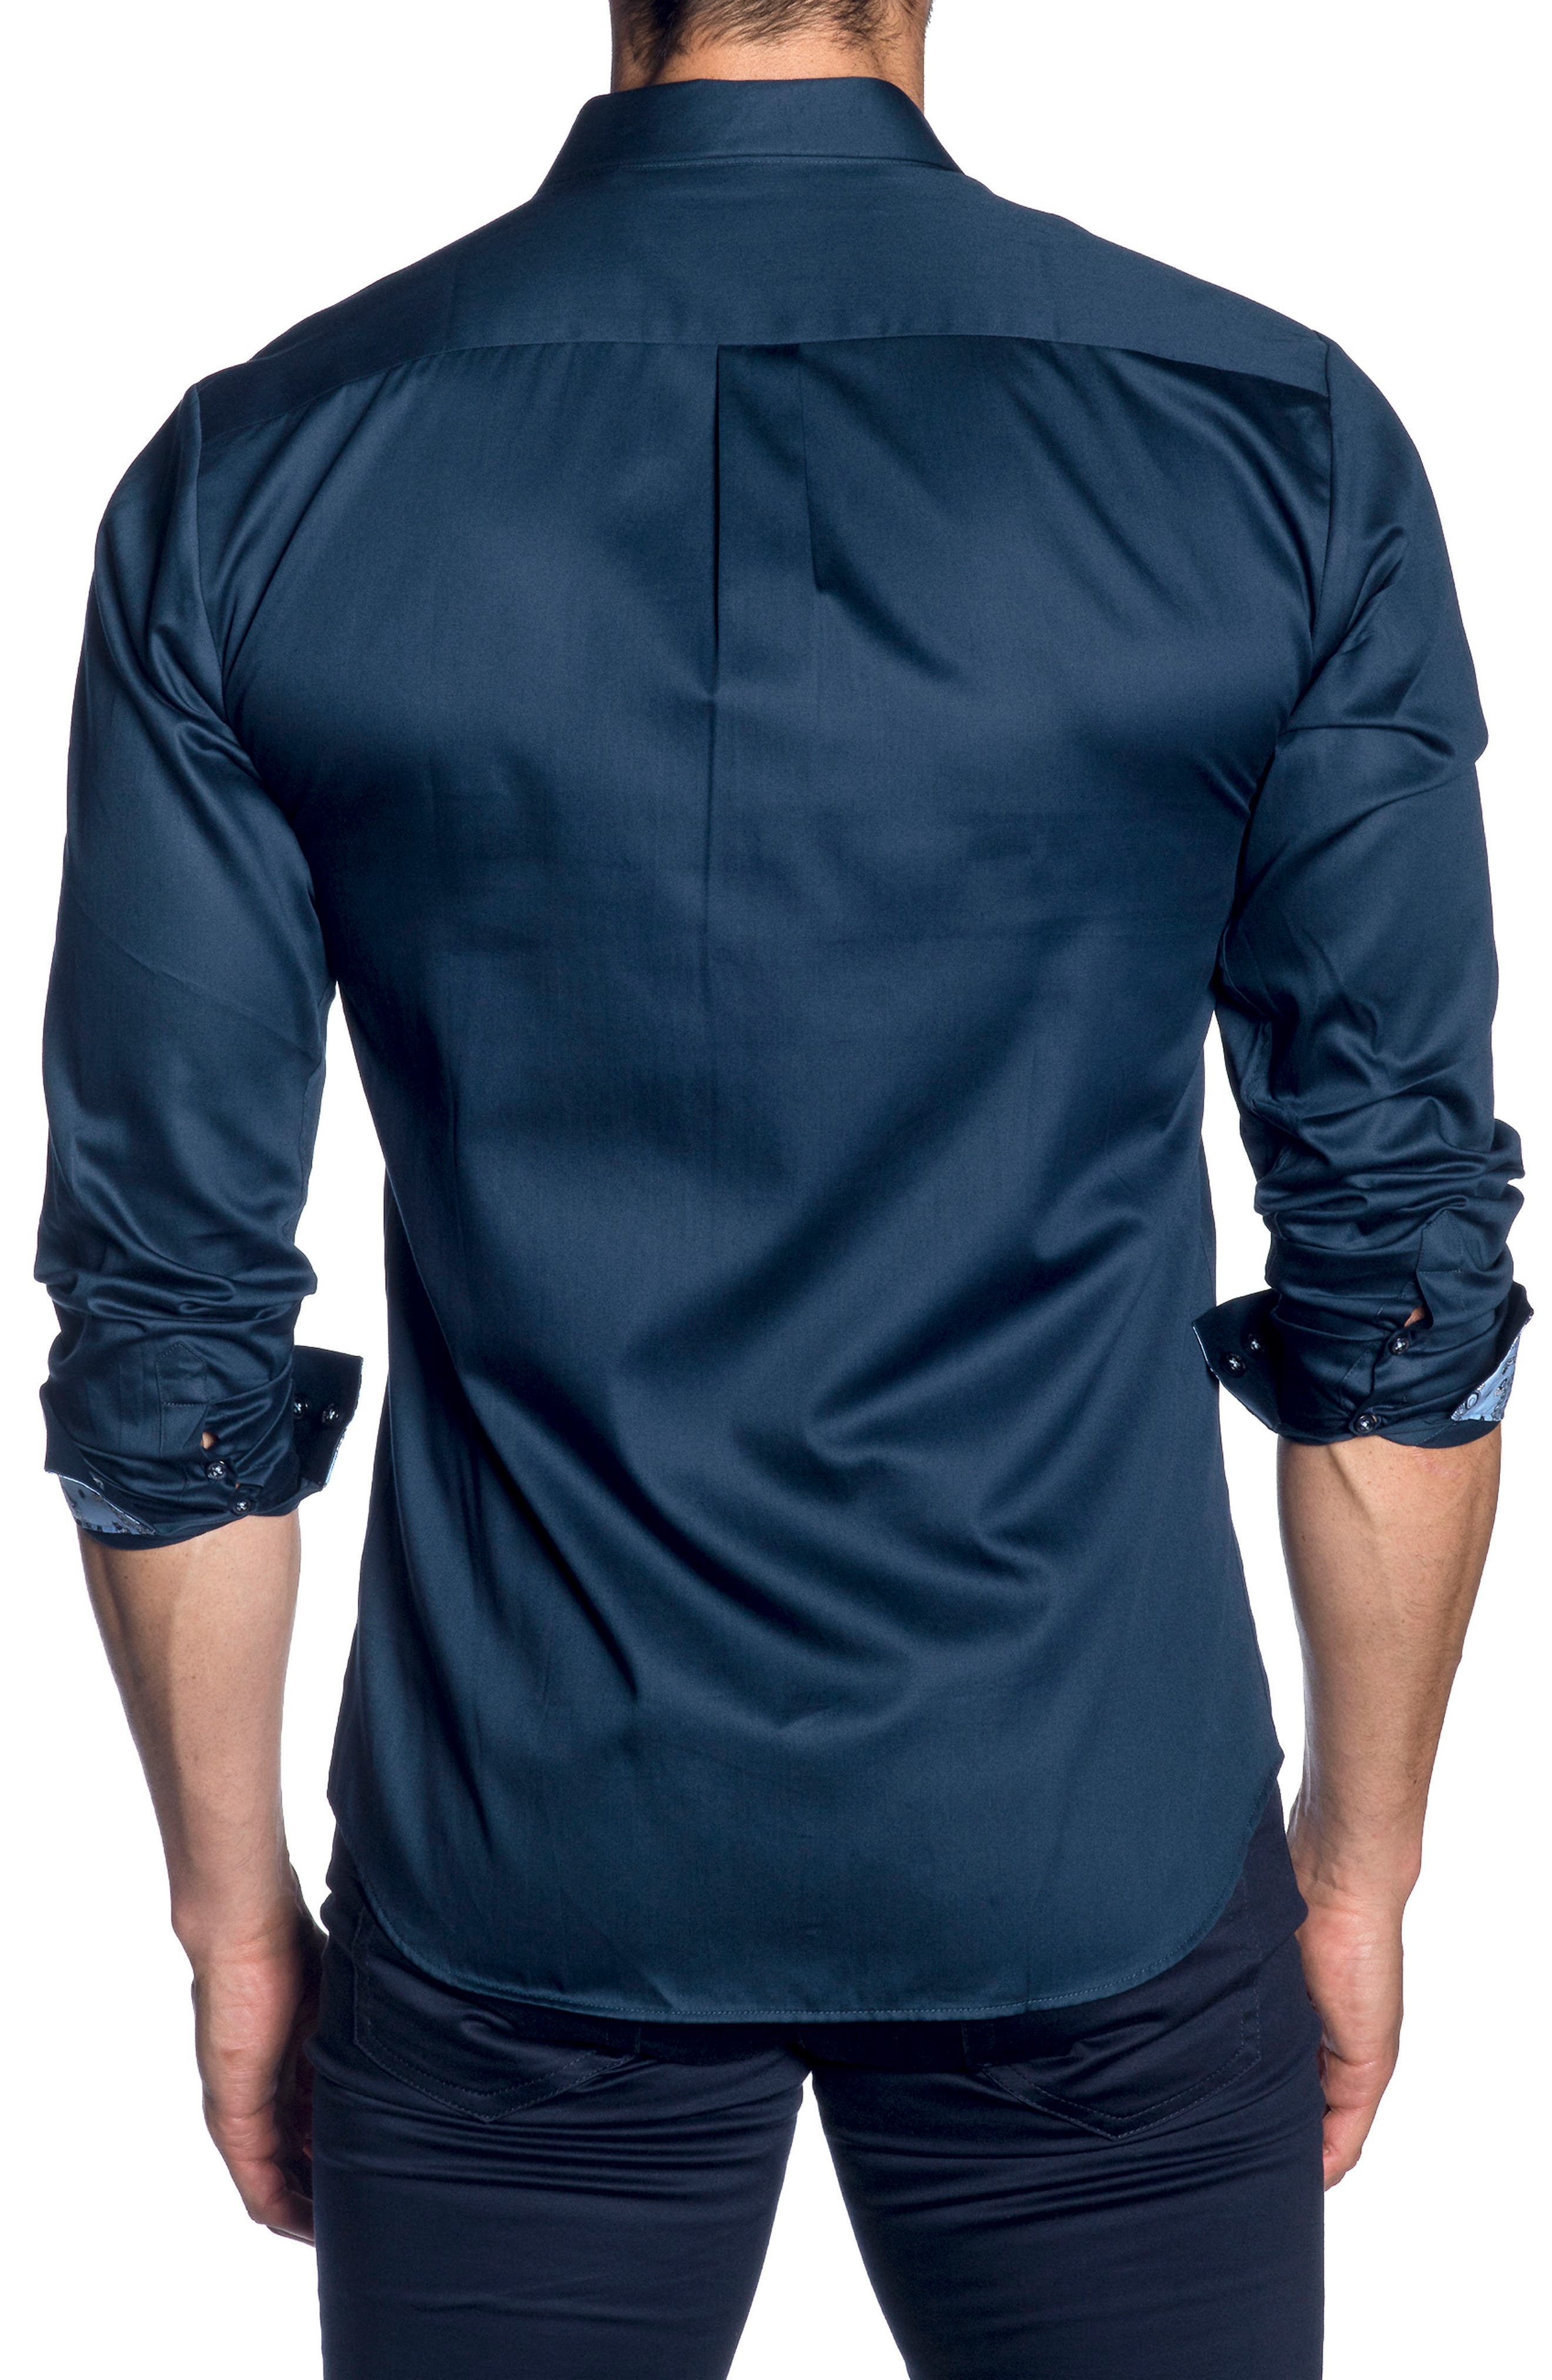 Trim Fit Sport Shirt,                             Alternate thumbnail 2, color,                             Navy